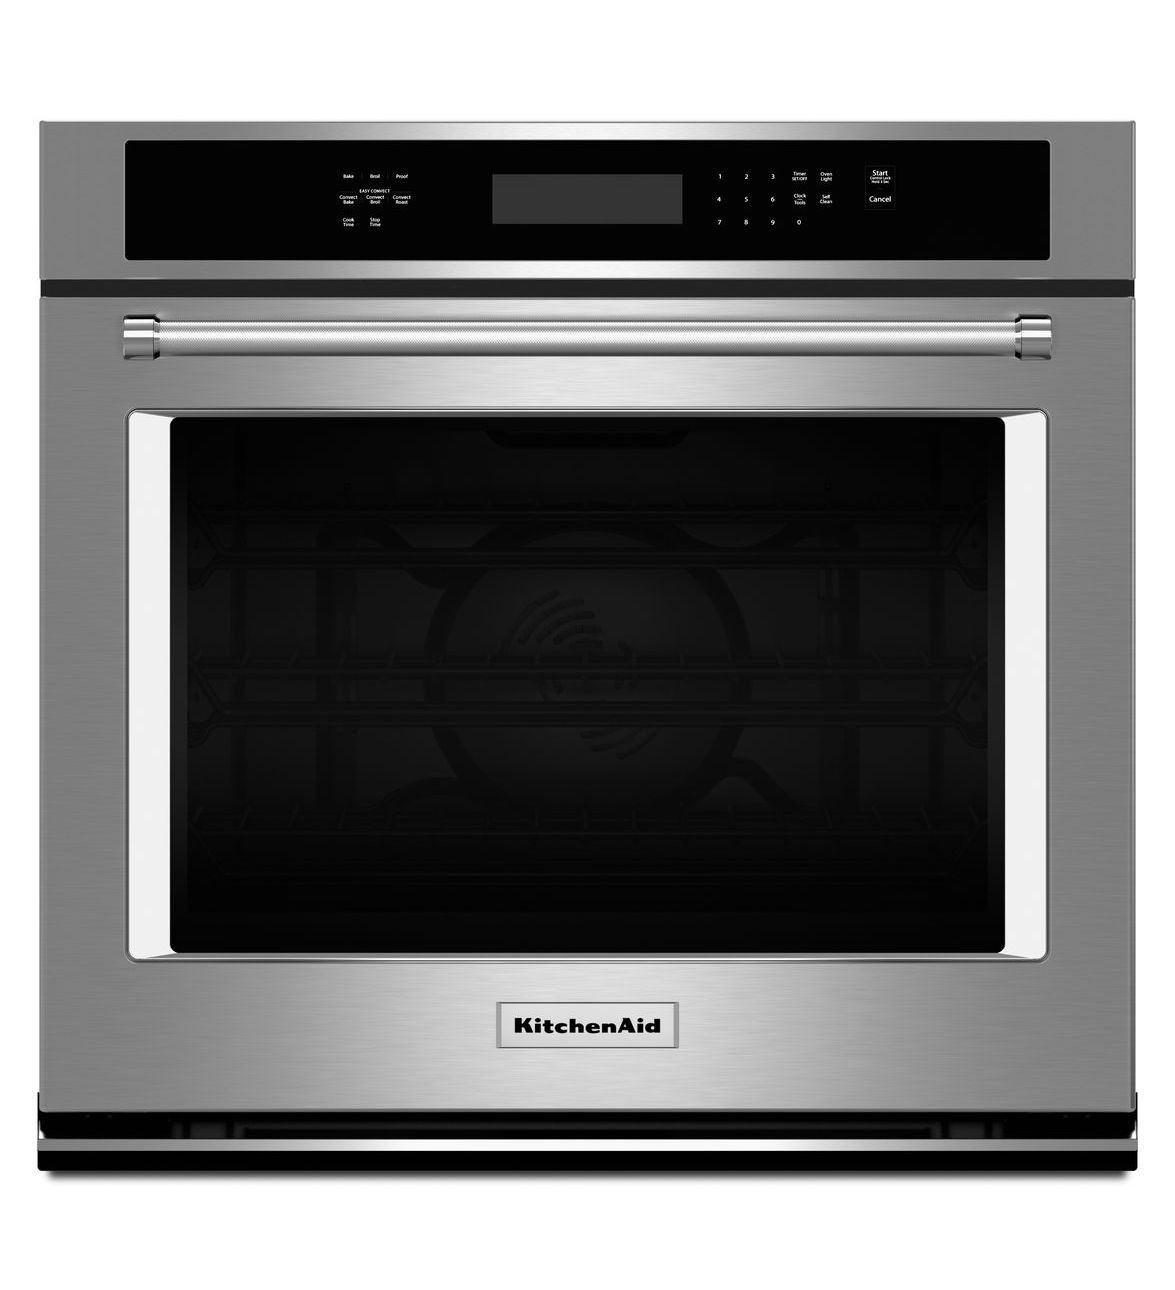 Kose507ess Kitchenaid 27 Inch Wall Oven With Even Heat